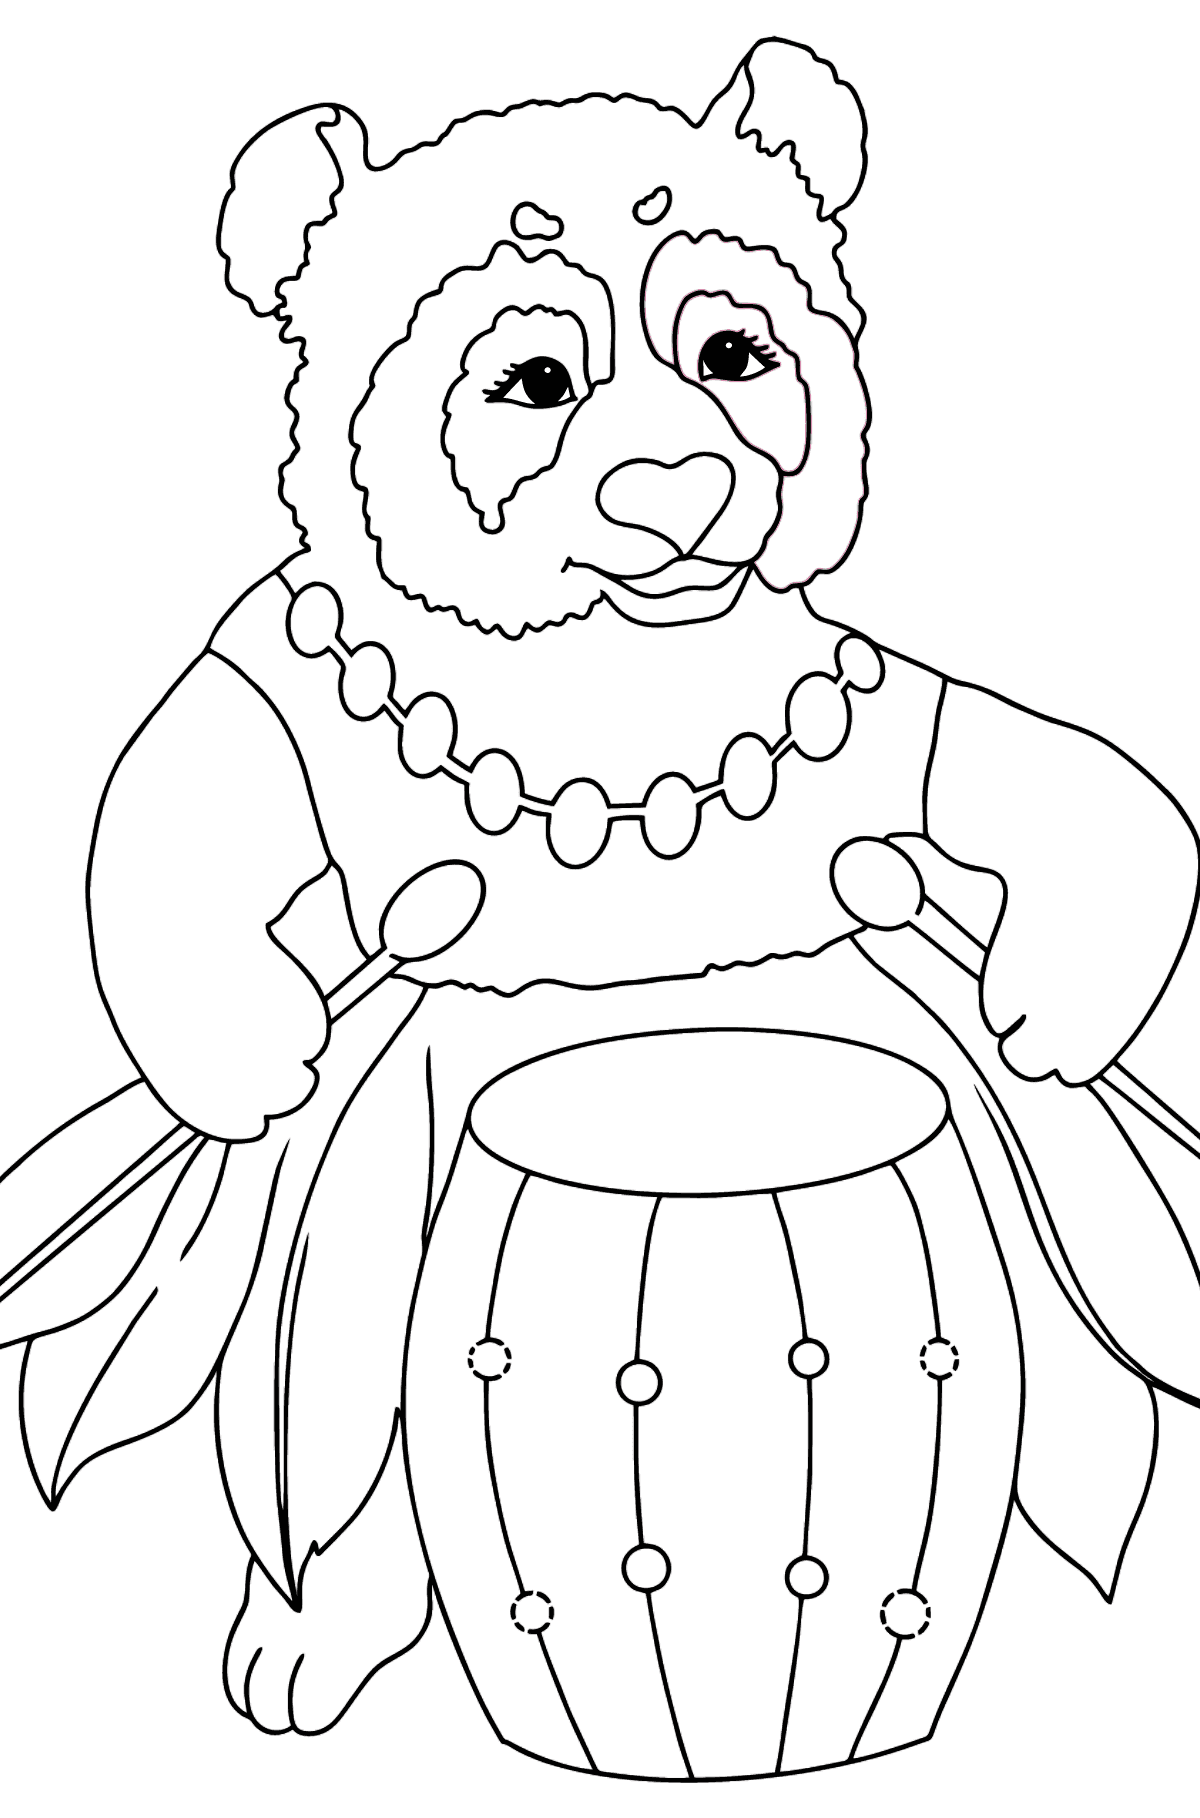 Coloring Page - A Panda and a Drum - Coloring Pages for Kids